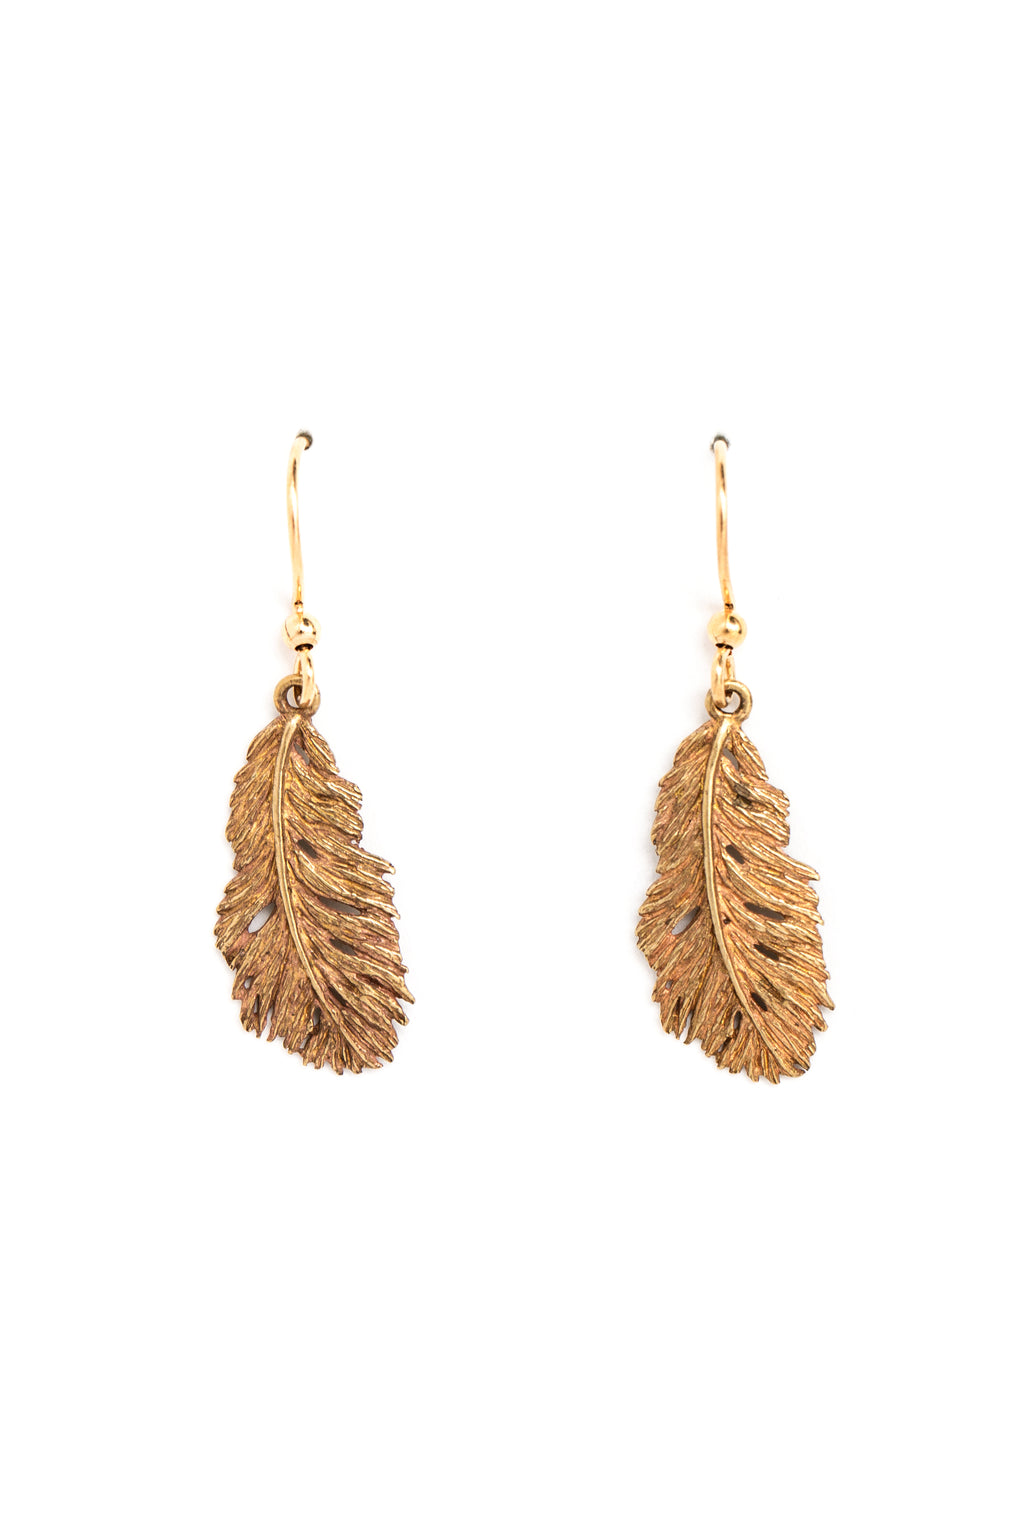 Wispy Feather Earrings